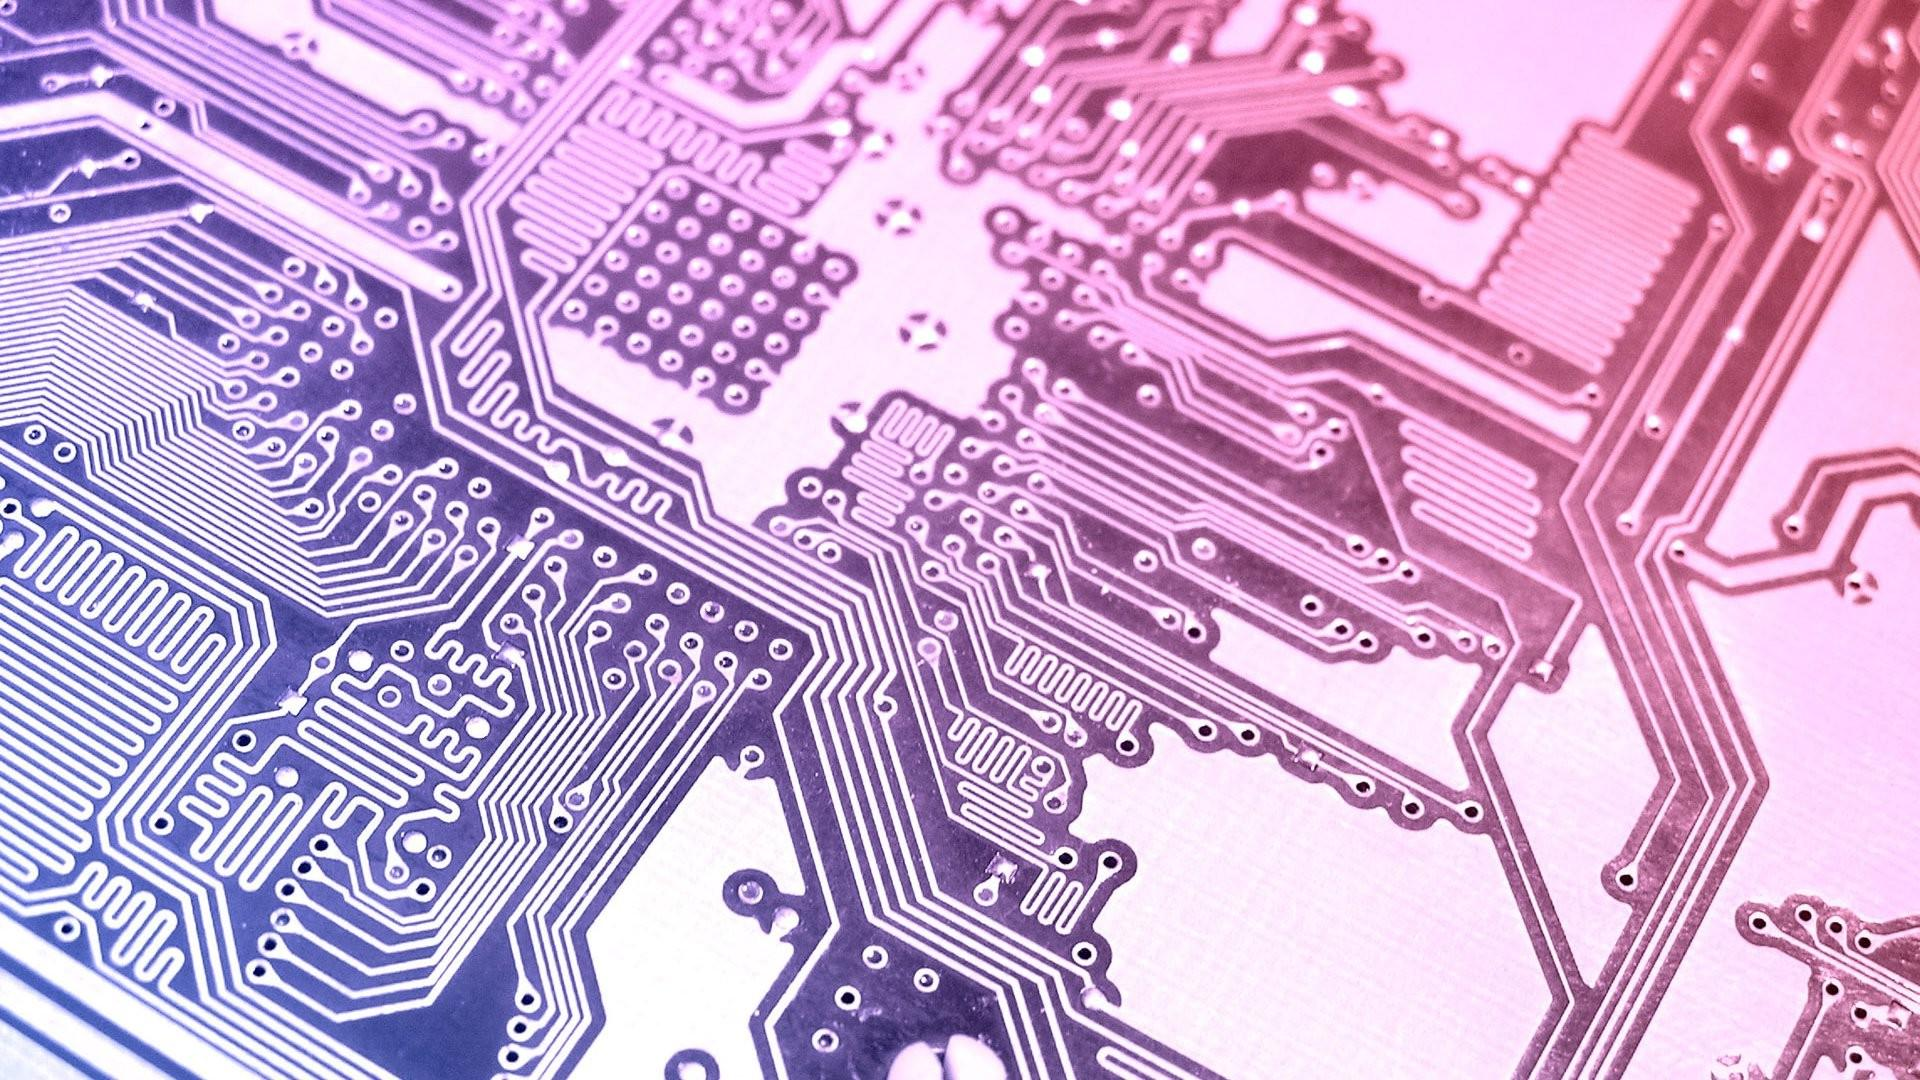 55 Best Free Electronic Circuit Wallpapers Wallpaperaccess Designing Circuits 1920x1080